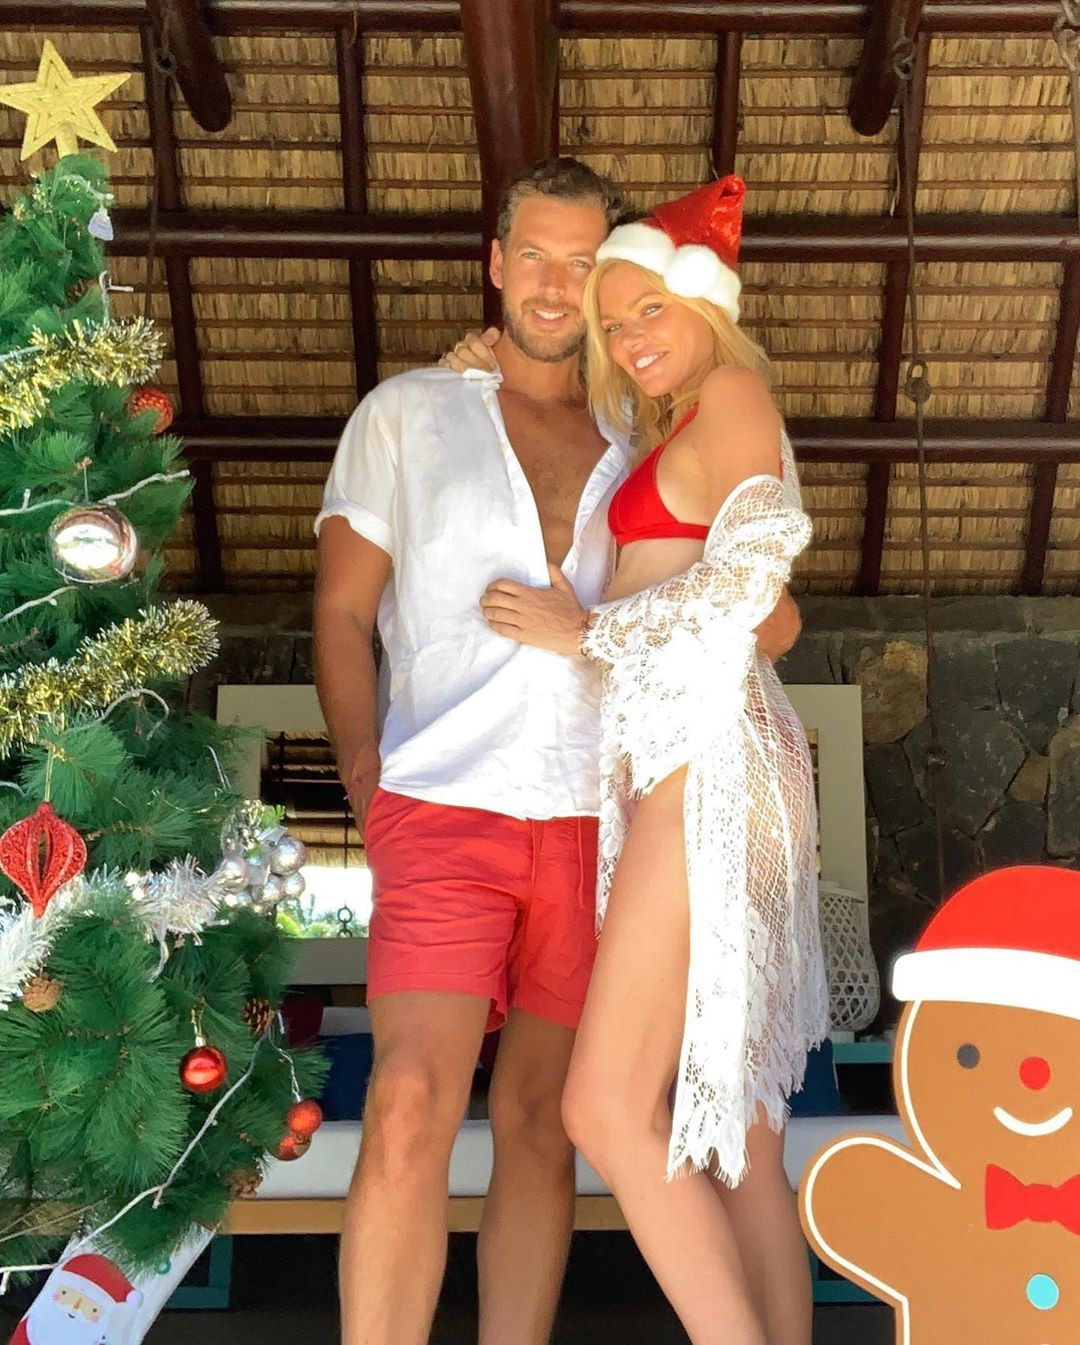 Sophie Monk Sexy Christmas Photos, Nice Tits